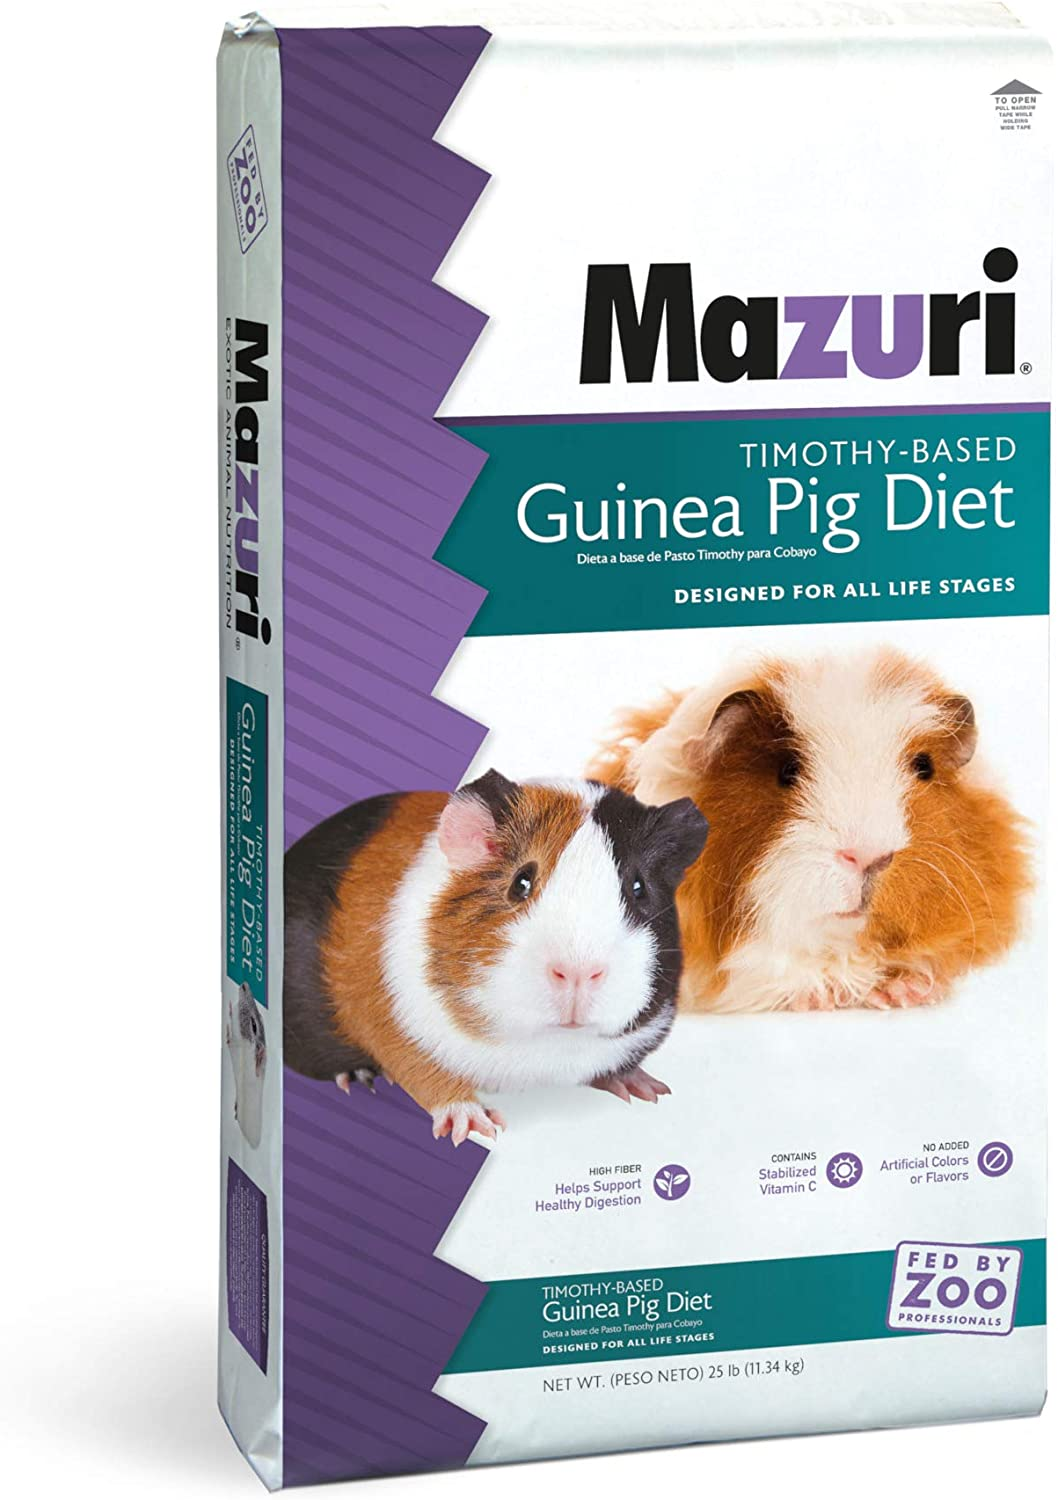 Mazuri Timothy-Based Guinea Pig Diet, 25 lb Bag